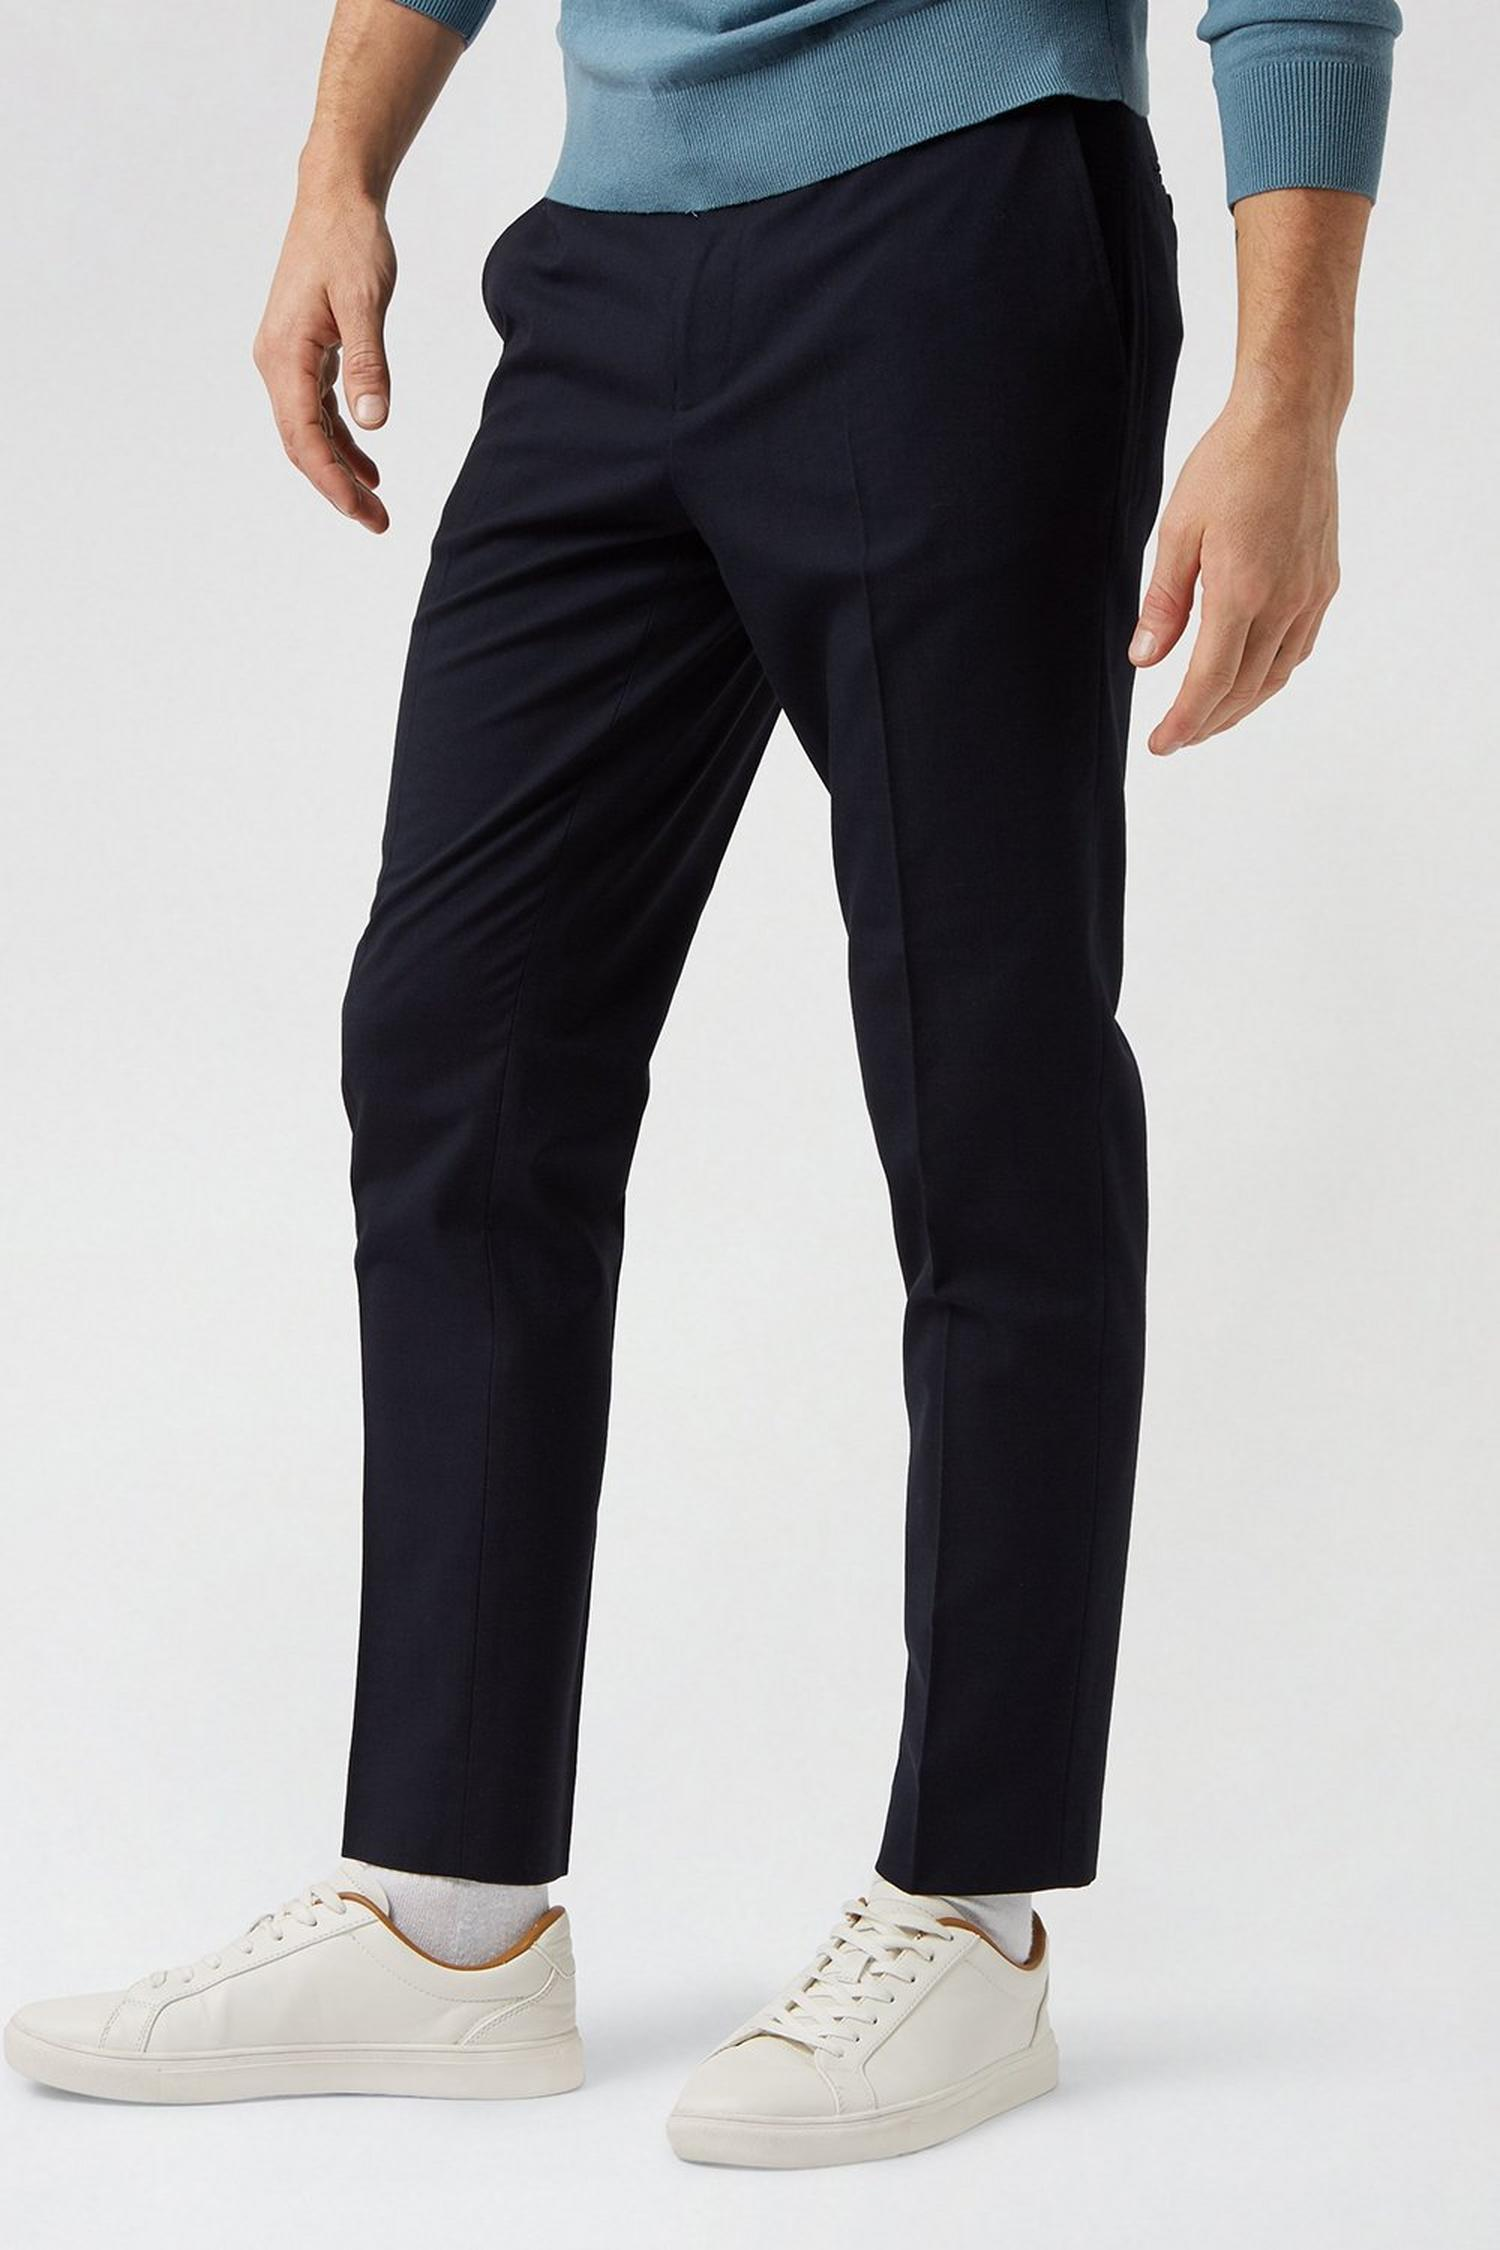 148 Navy Essential Skinny Fit Suit Trousers image number 1